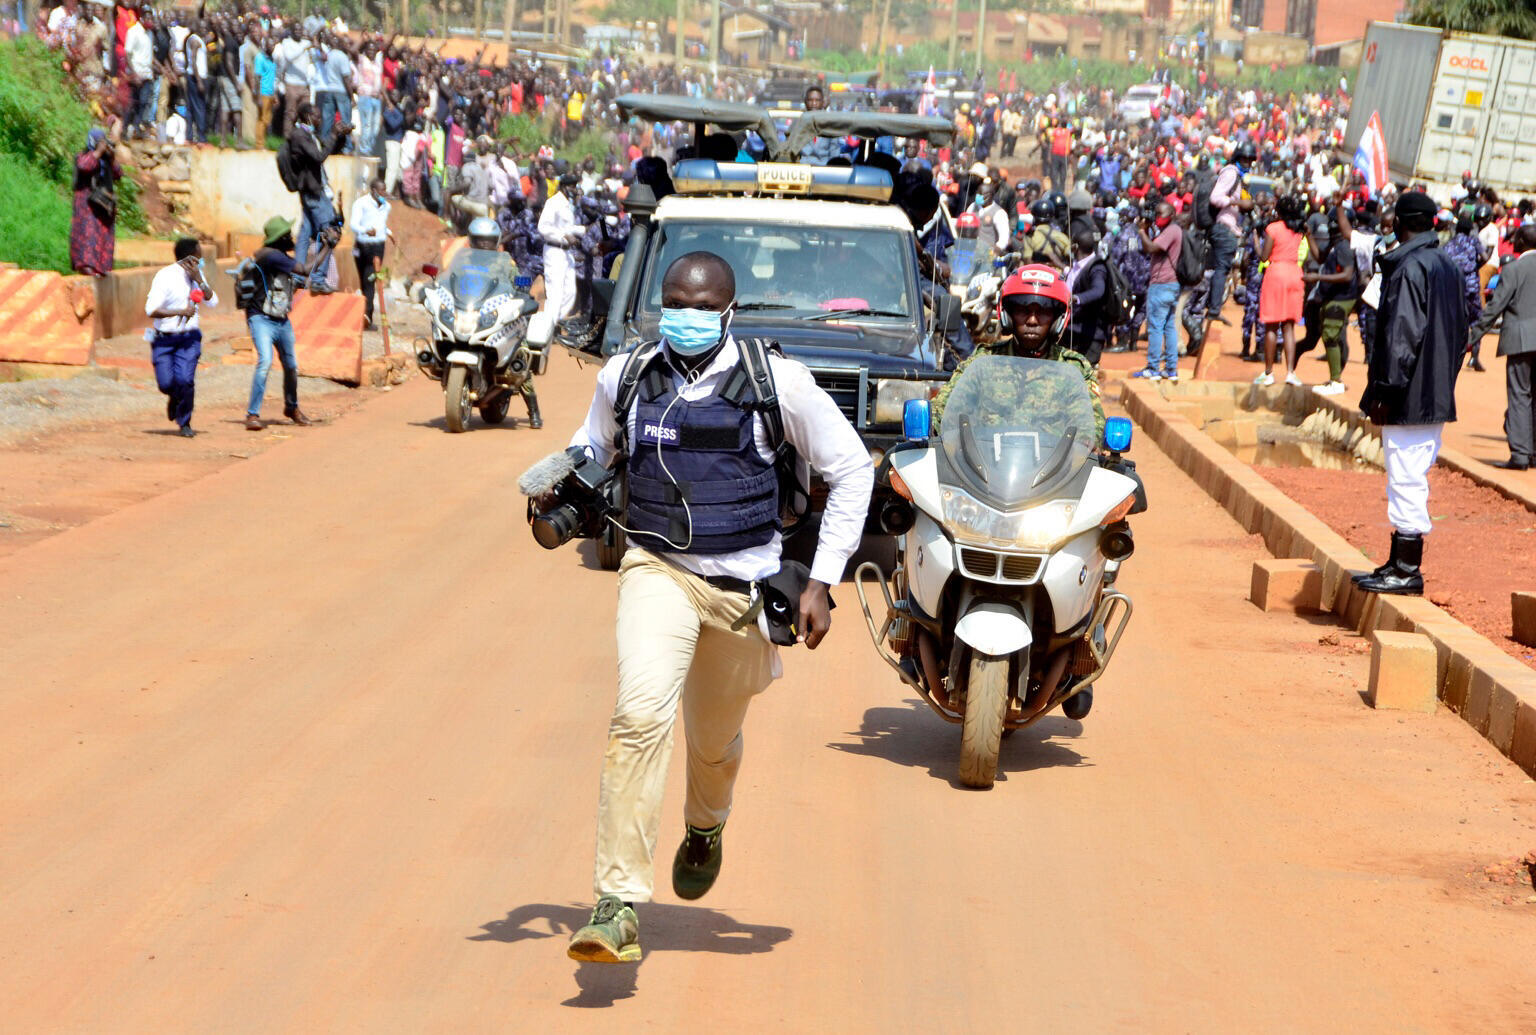 Uganda journalists Moses Bwayo shot in face by police